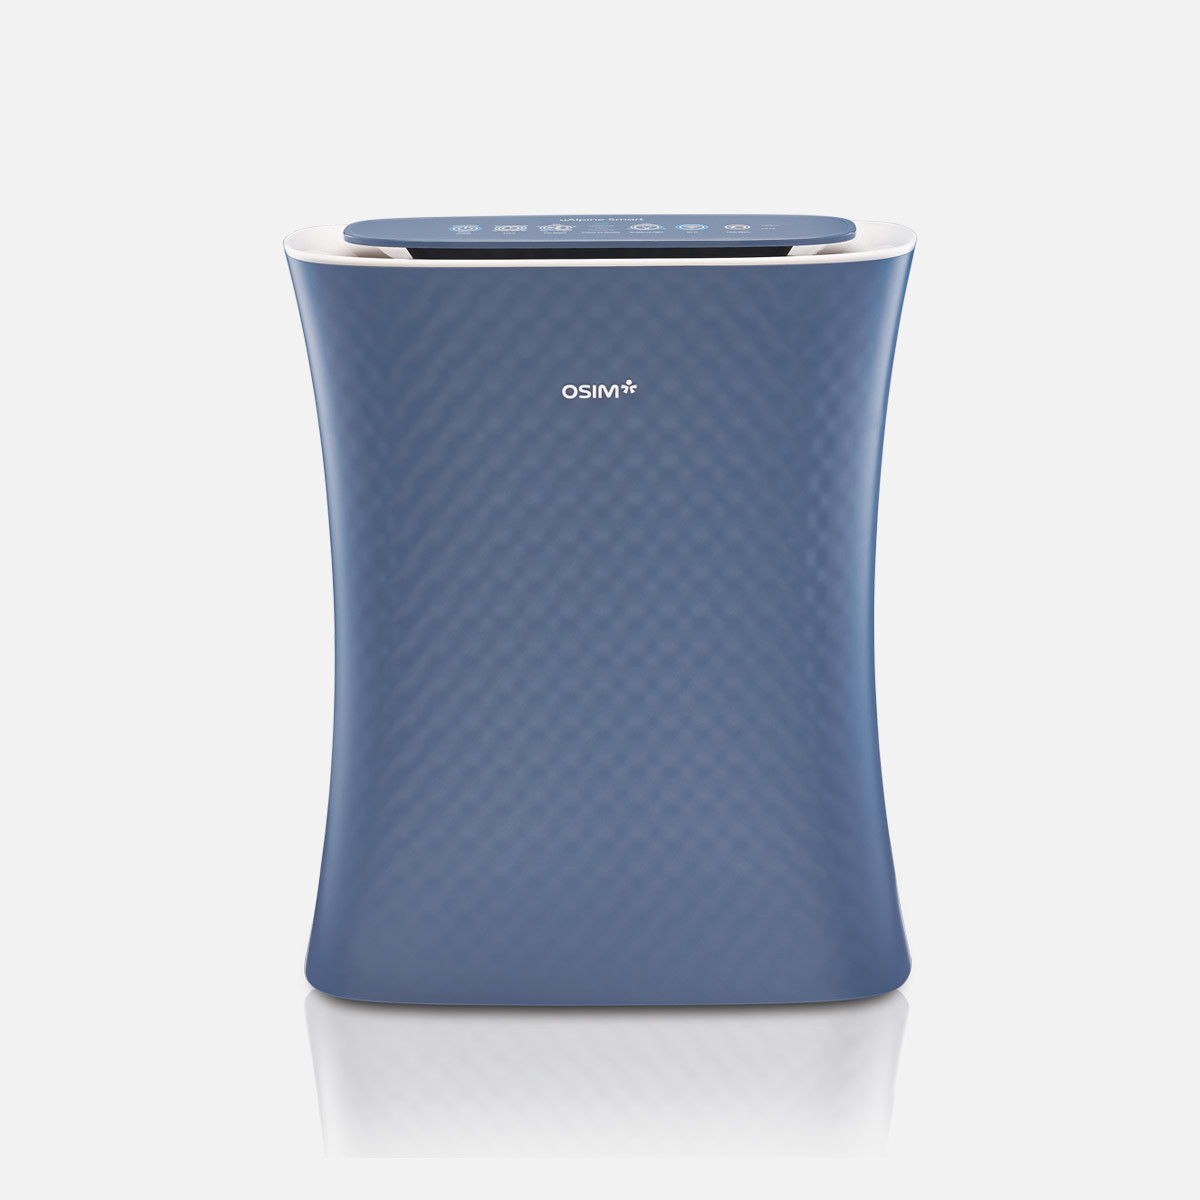 uAlpine Smart Air Purifier